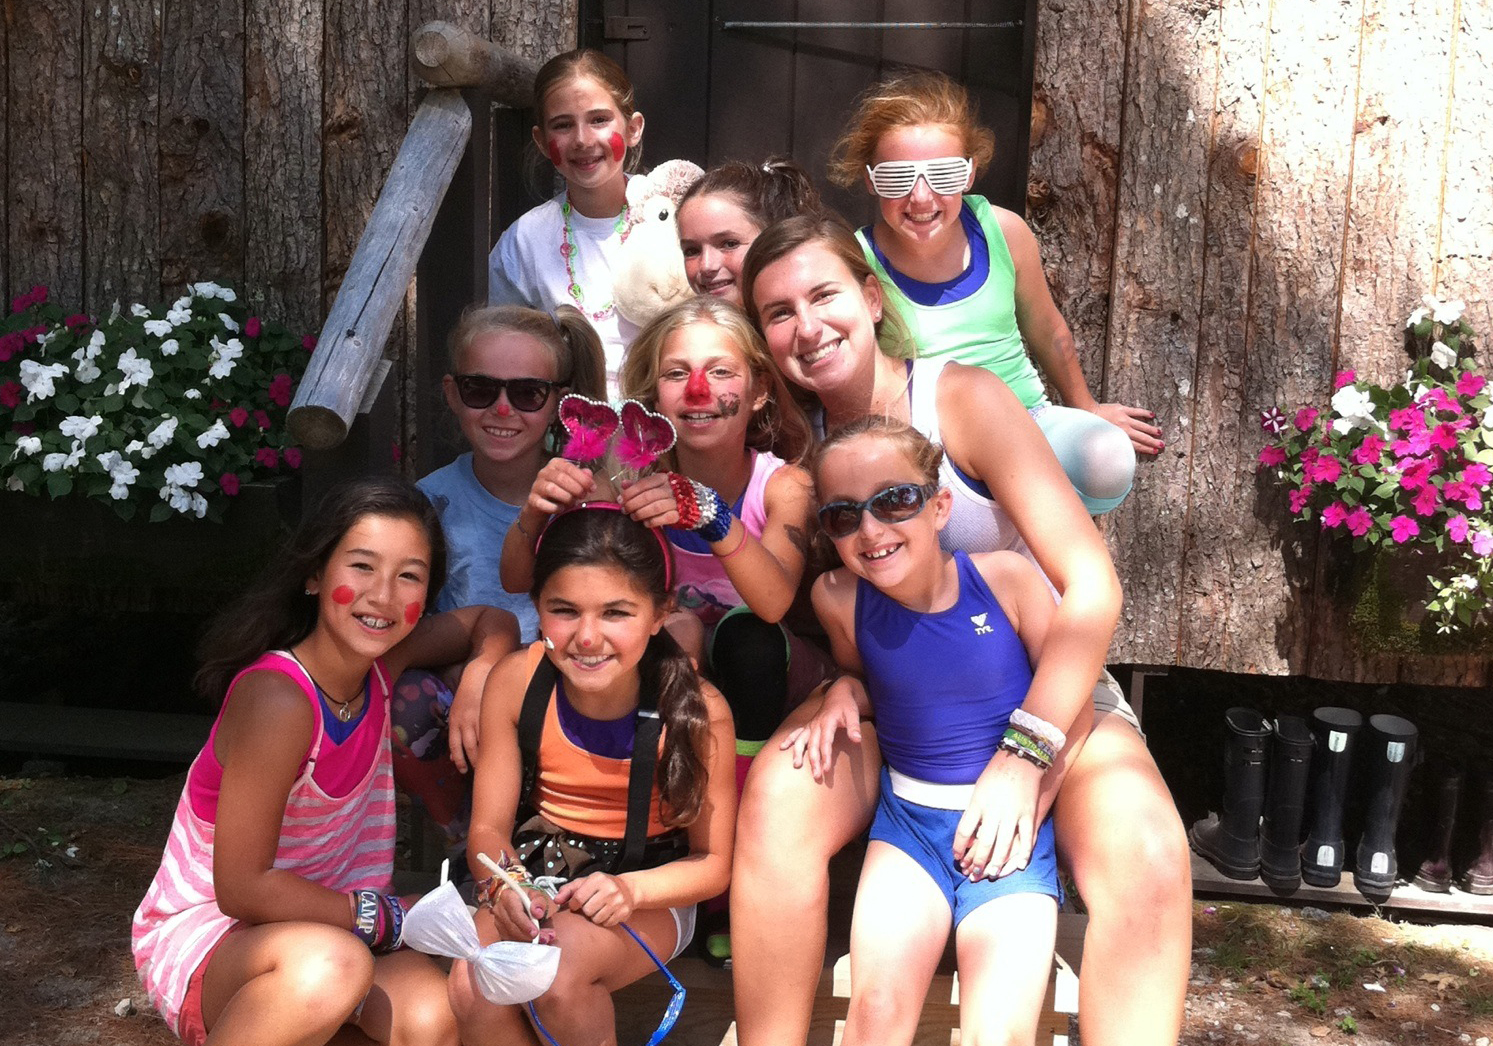 Camp Pinecliffe - An All Girls Summer Camp in Maine - Camp